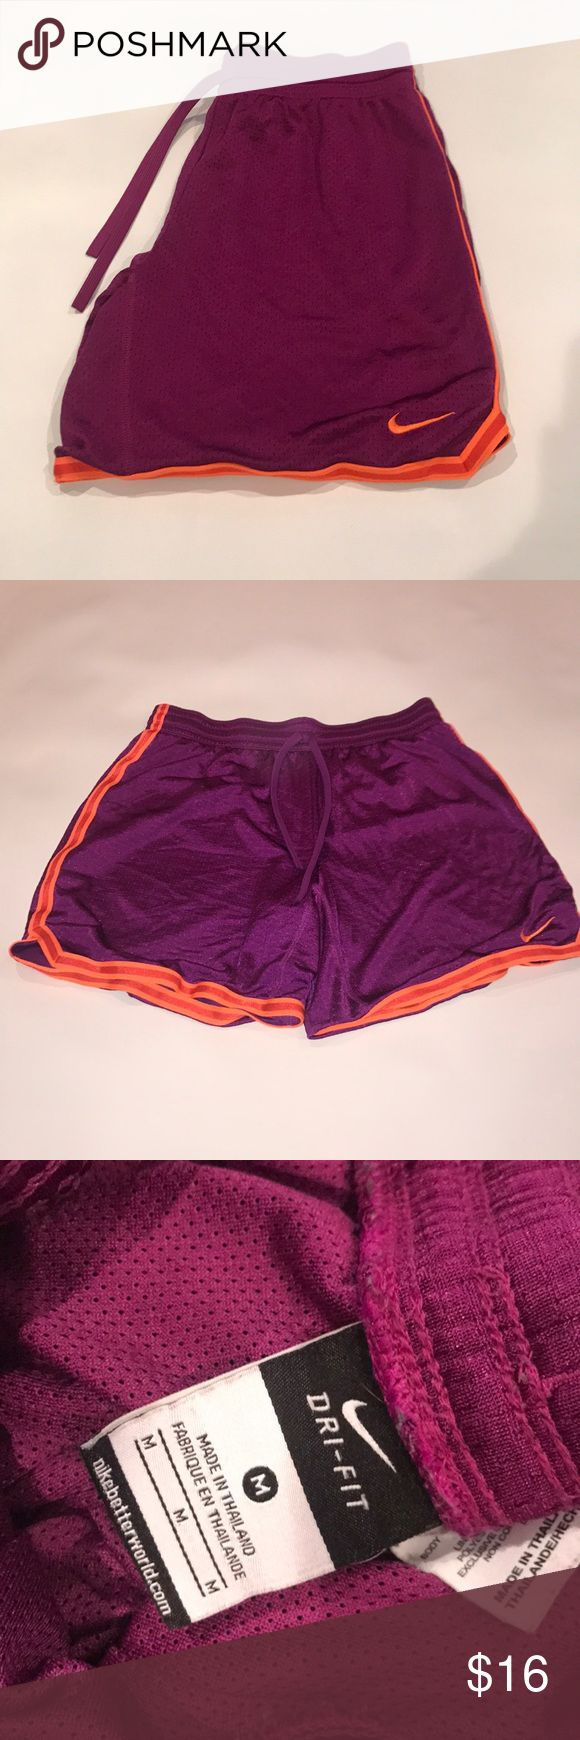 Nike Athletic Shorts M Purple 0187 Nike Athletic Shorts M Purple Nike Shorts